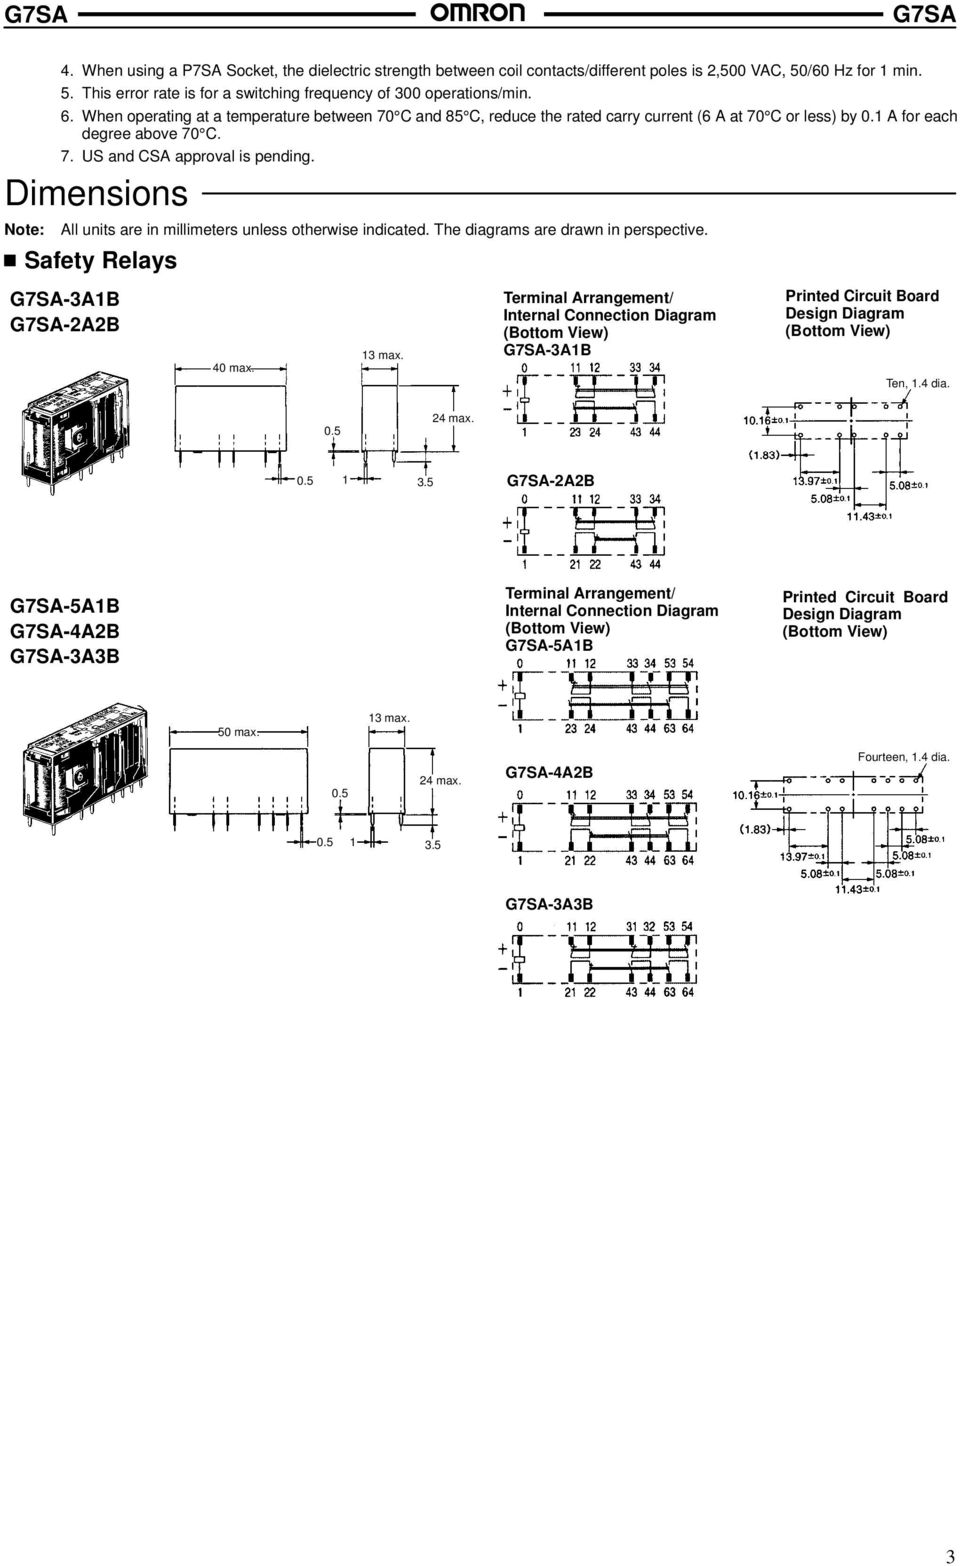 Dimensions Note: All units are in millimeters unless otherwise indicated. The diagrams are drawn in perspective. Safety Relays -3A1B -2A2B 40 max. 13 max.